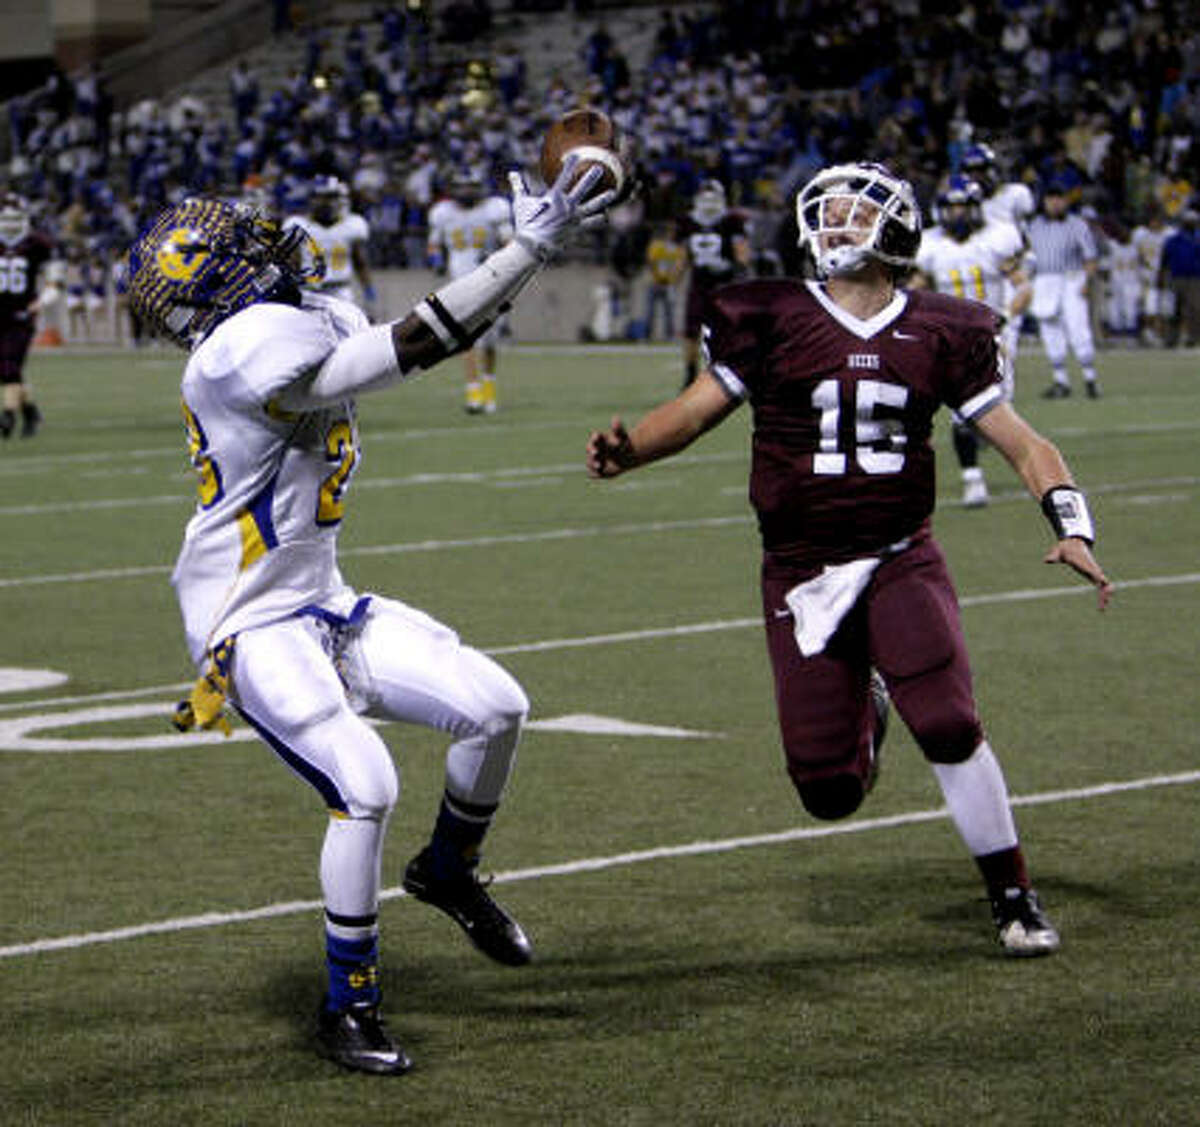 Chapel Hill's Lairamee Lee intercepts a ball intended for Columbia receiver Tyler Ince on Friday night.